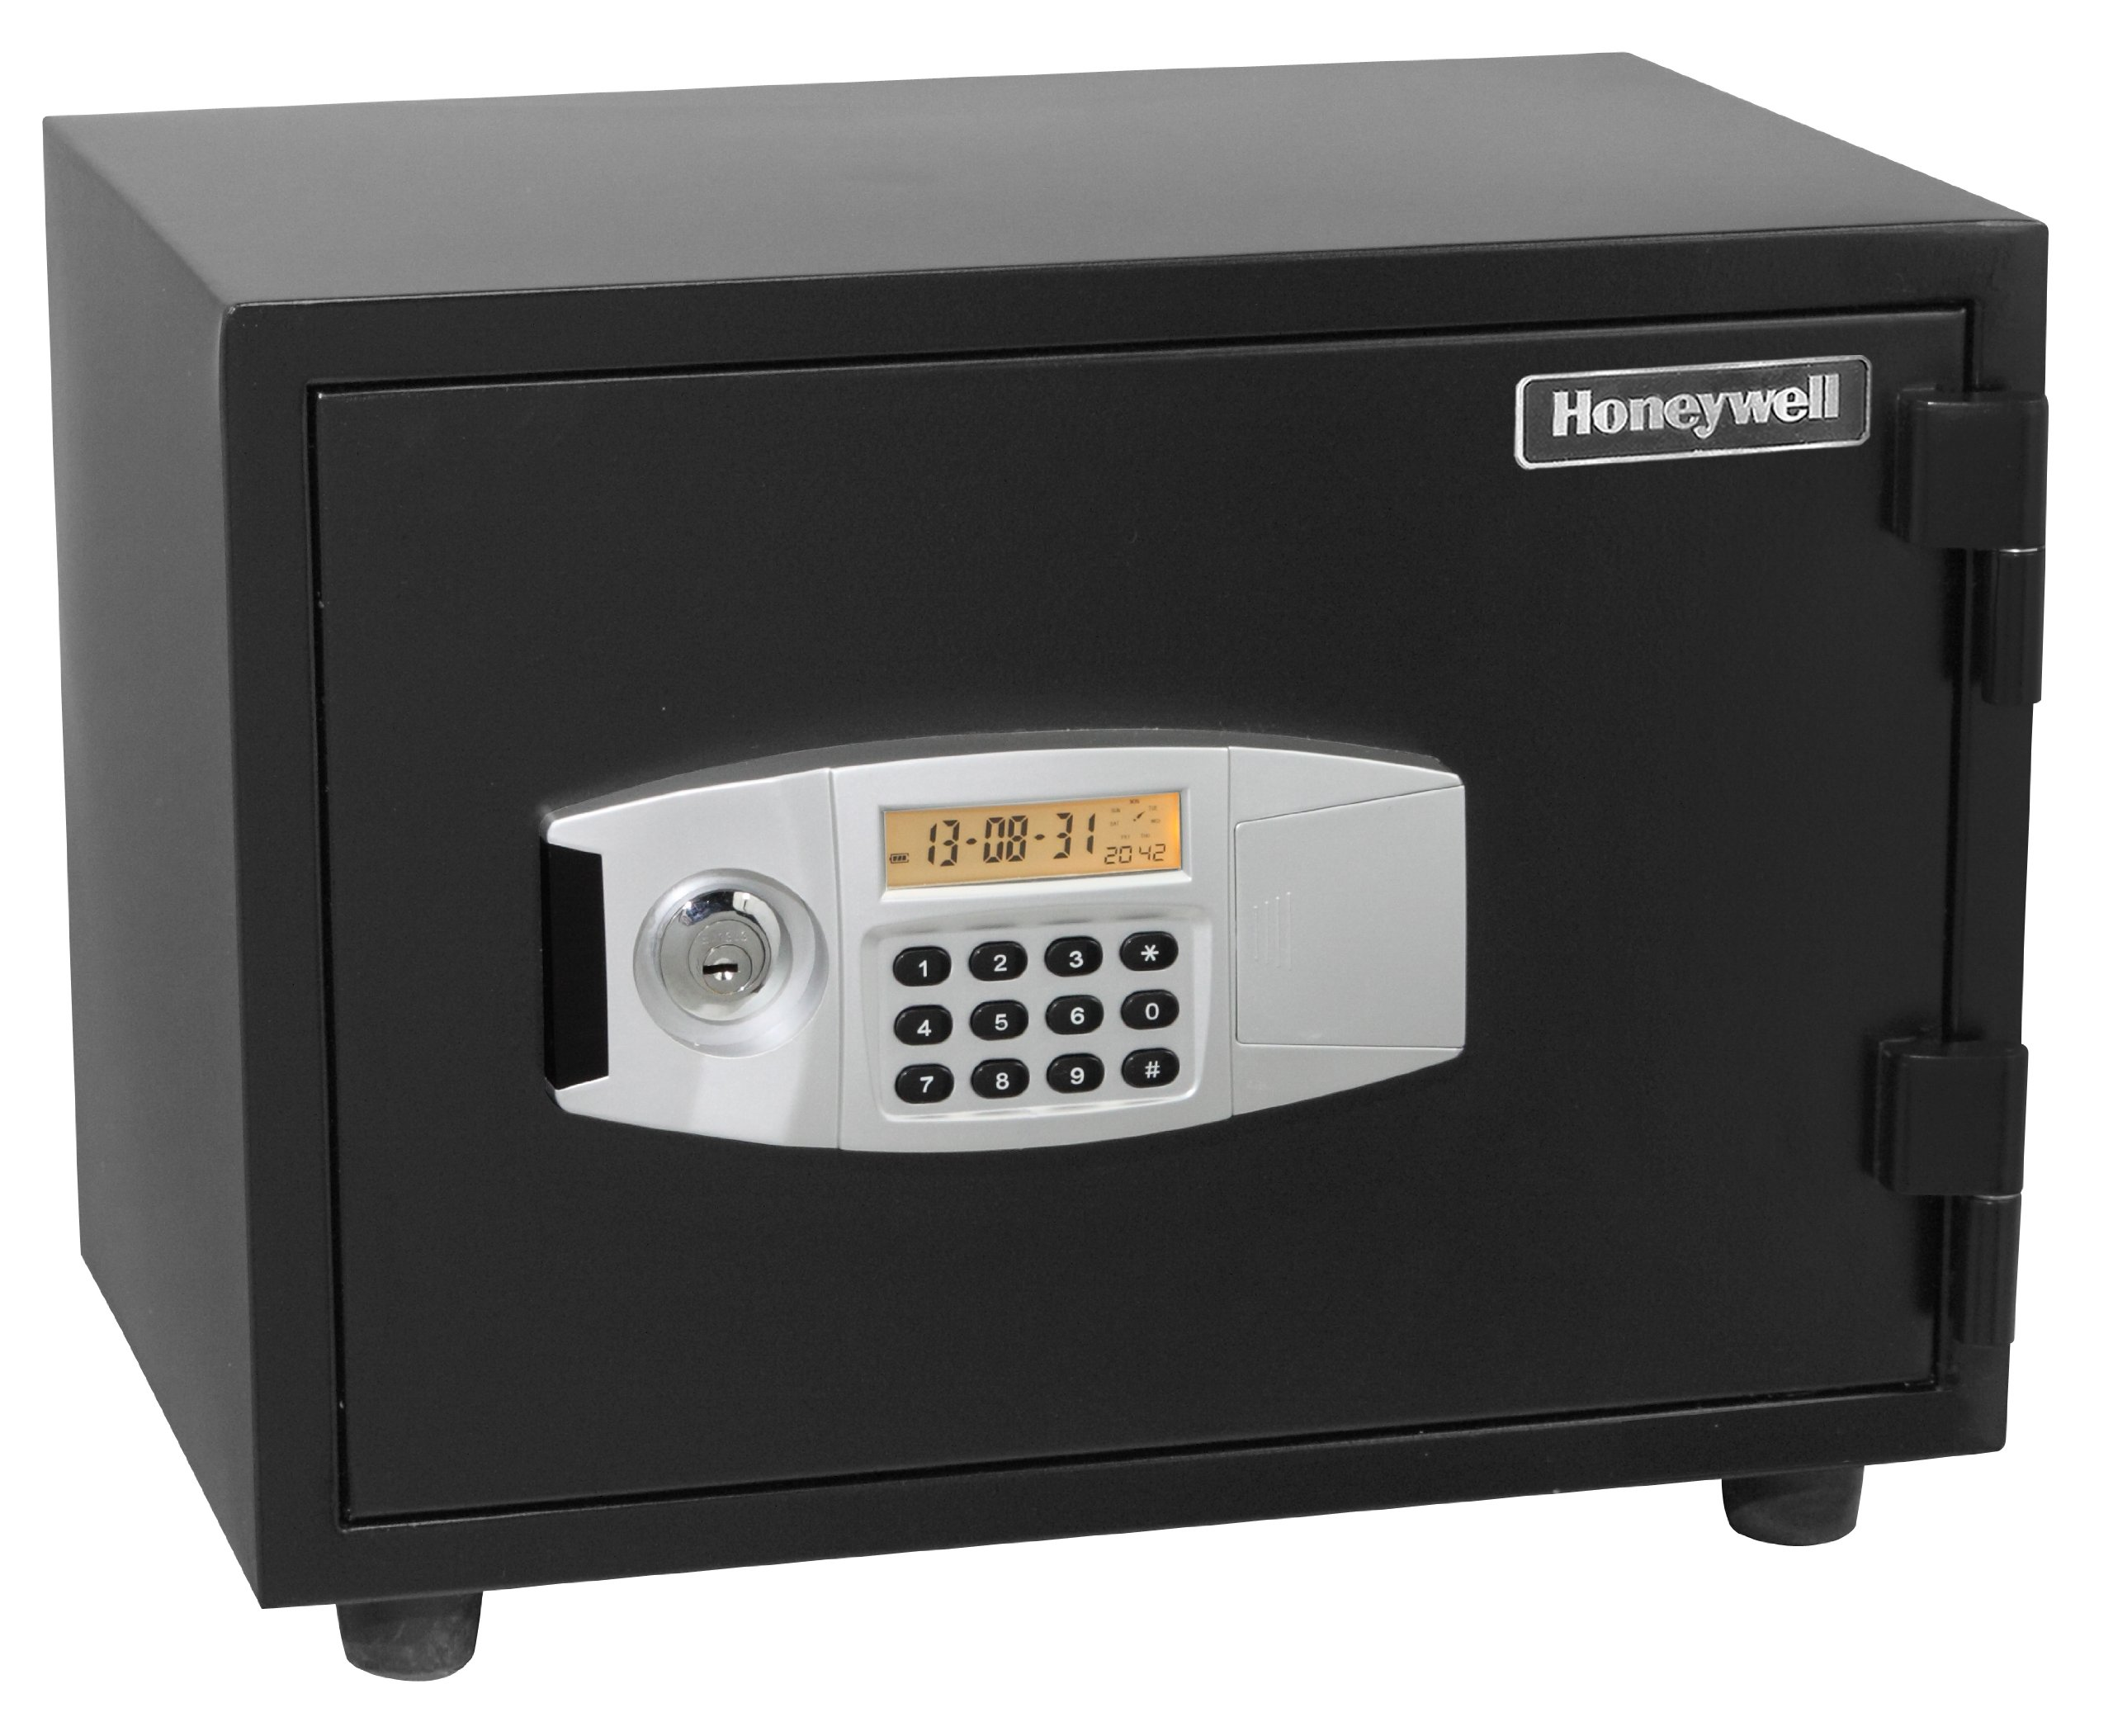 Honeywell 2112 Steel Fireproof/Waterproof and Security Safe with Dual Digital Lock and Key Protection, 0.57-Cubic Feet, Black